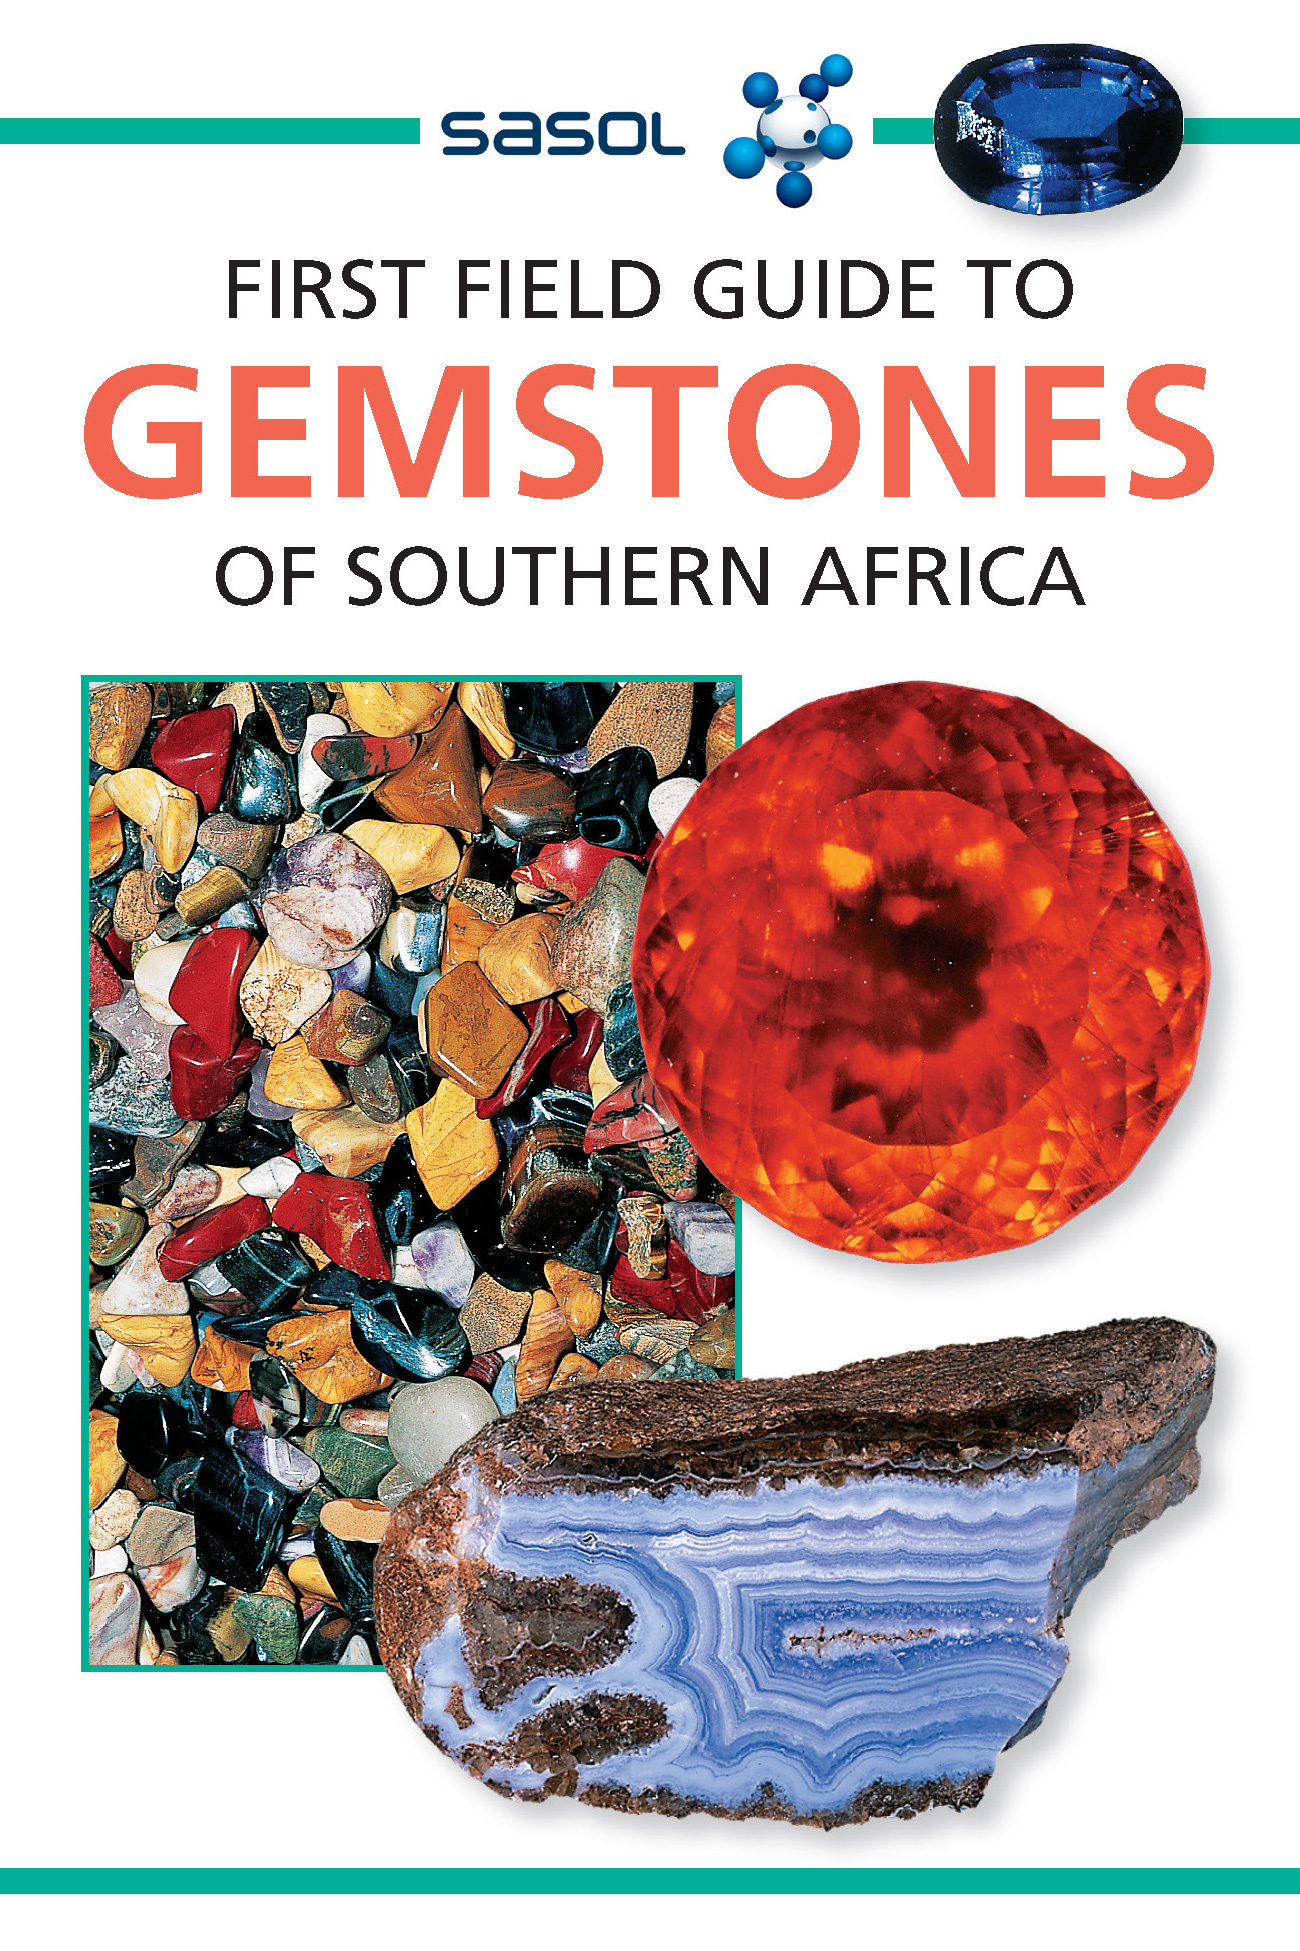 First Field Guide to Gemstones